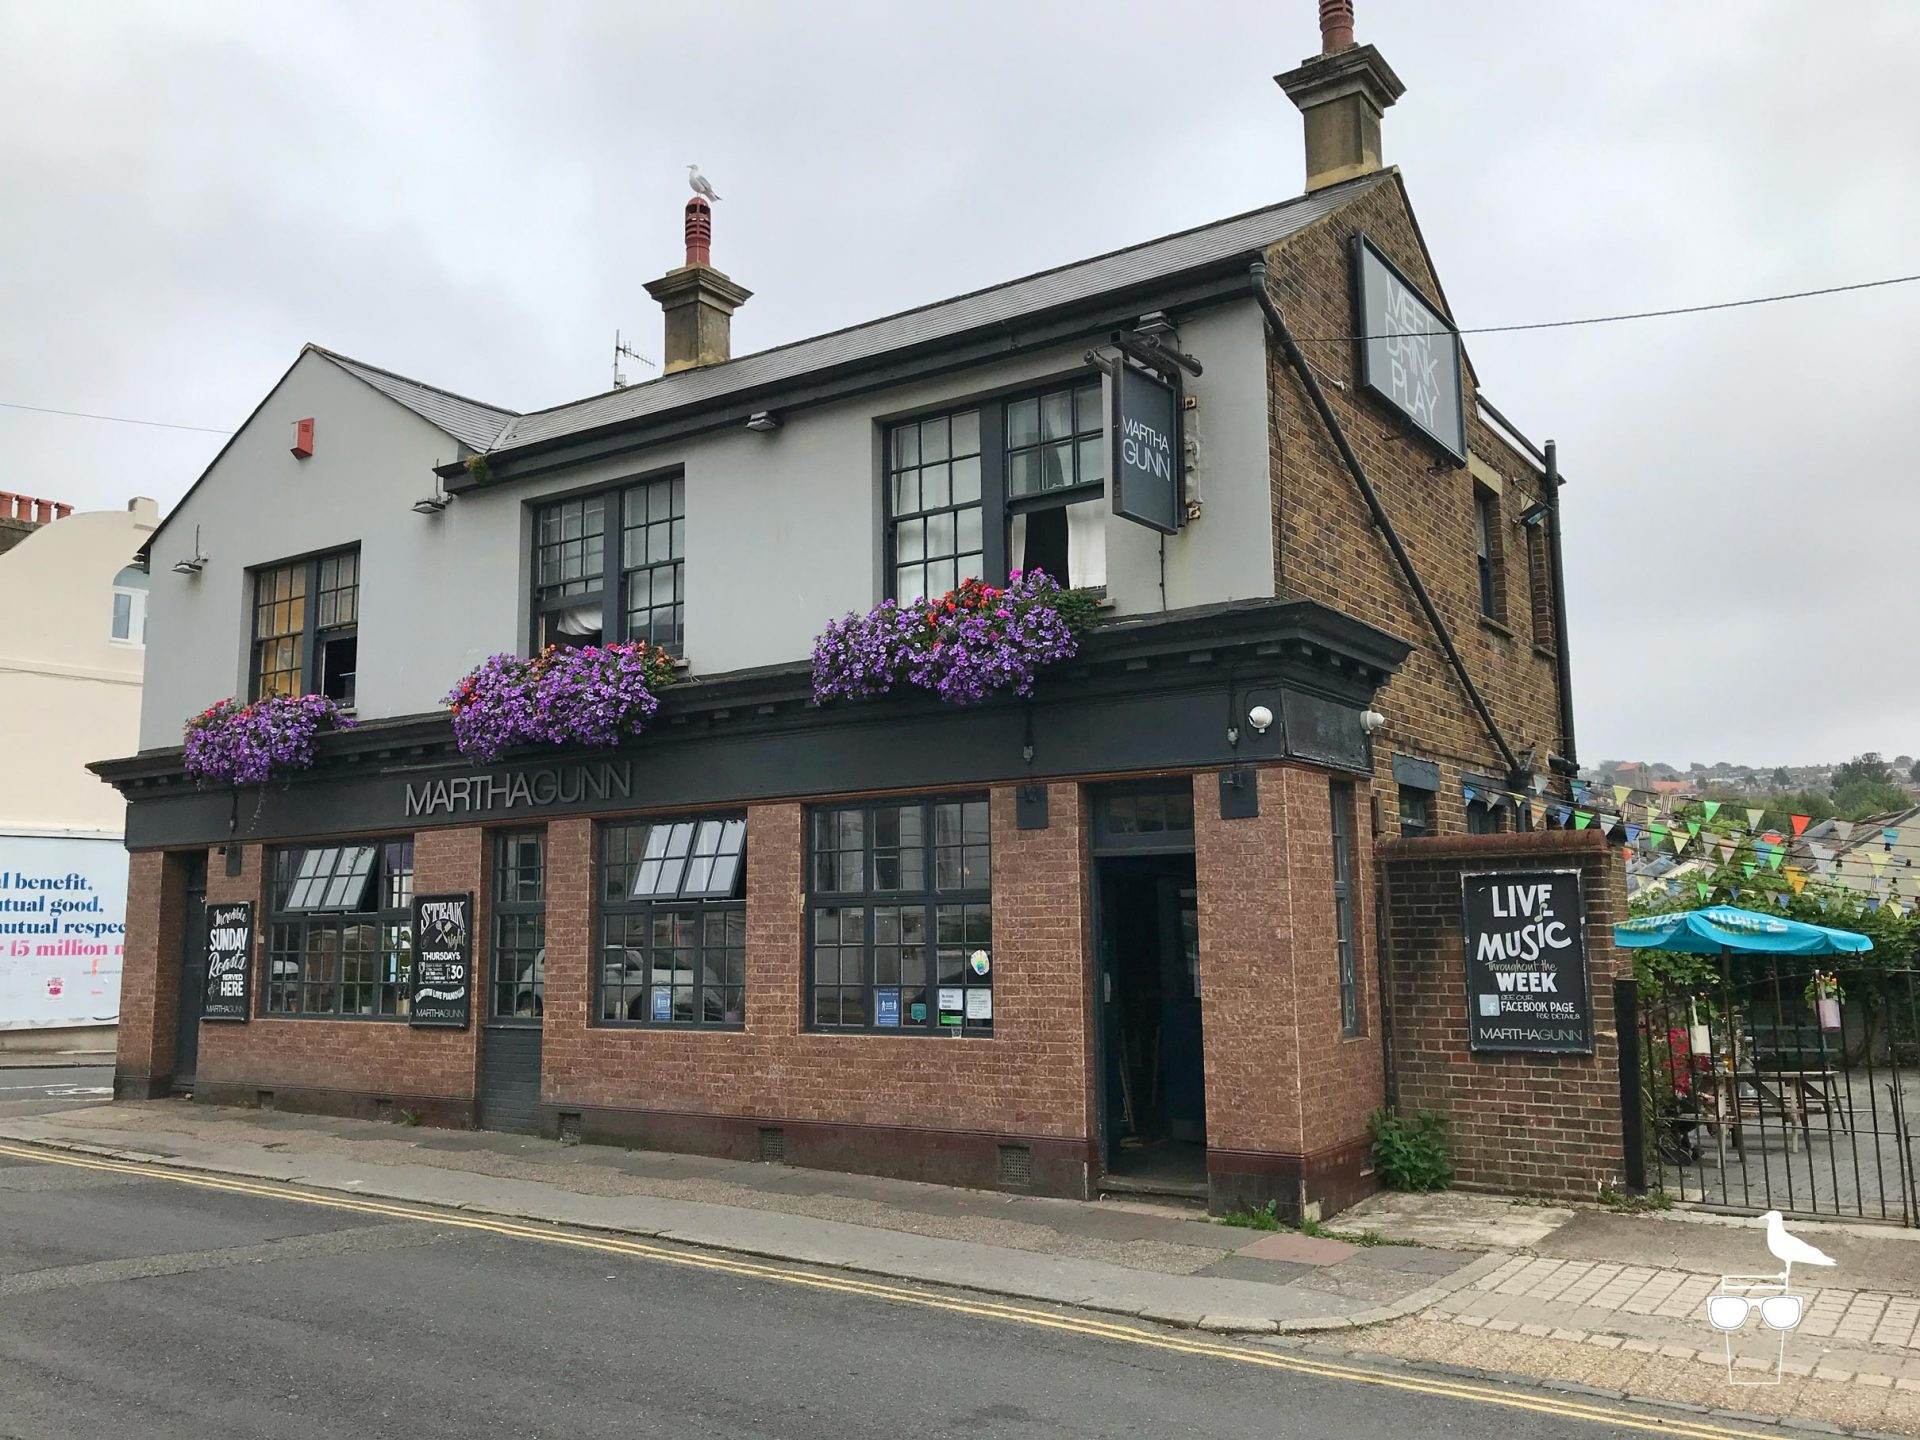 martha-gunn-pub-brighton-outside-front